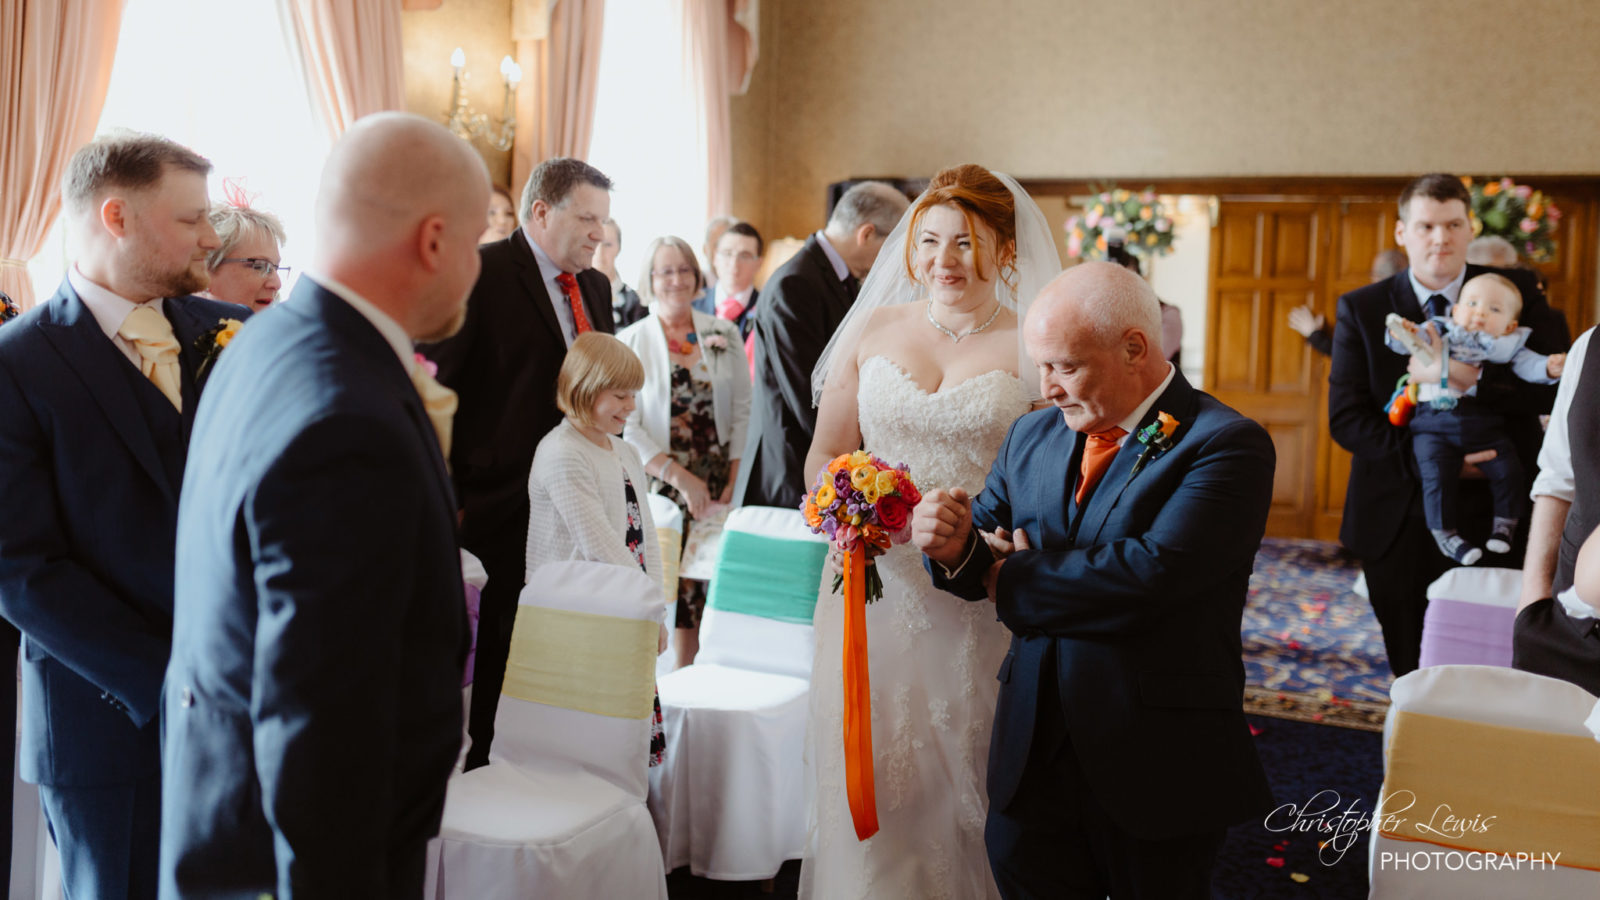 Shrigley-Hall-Wedding-30